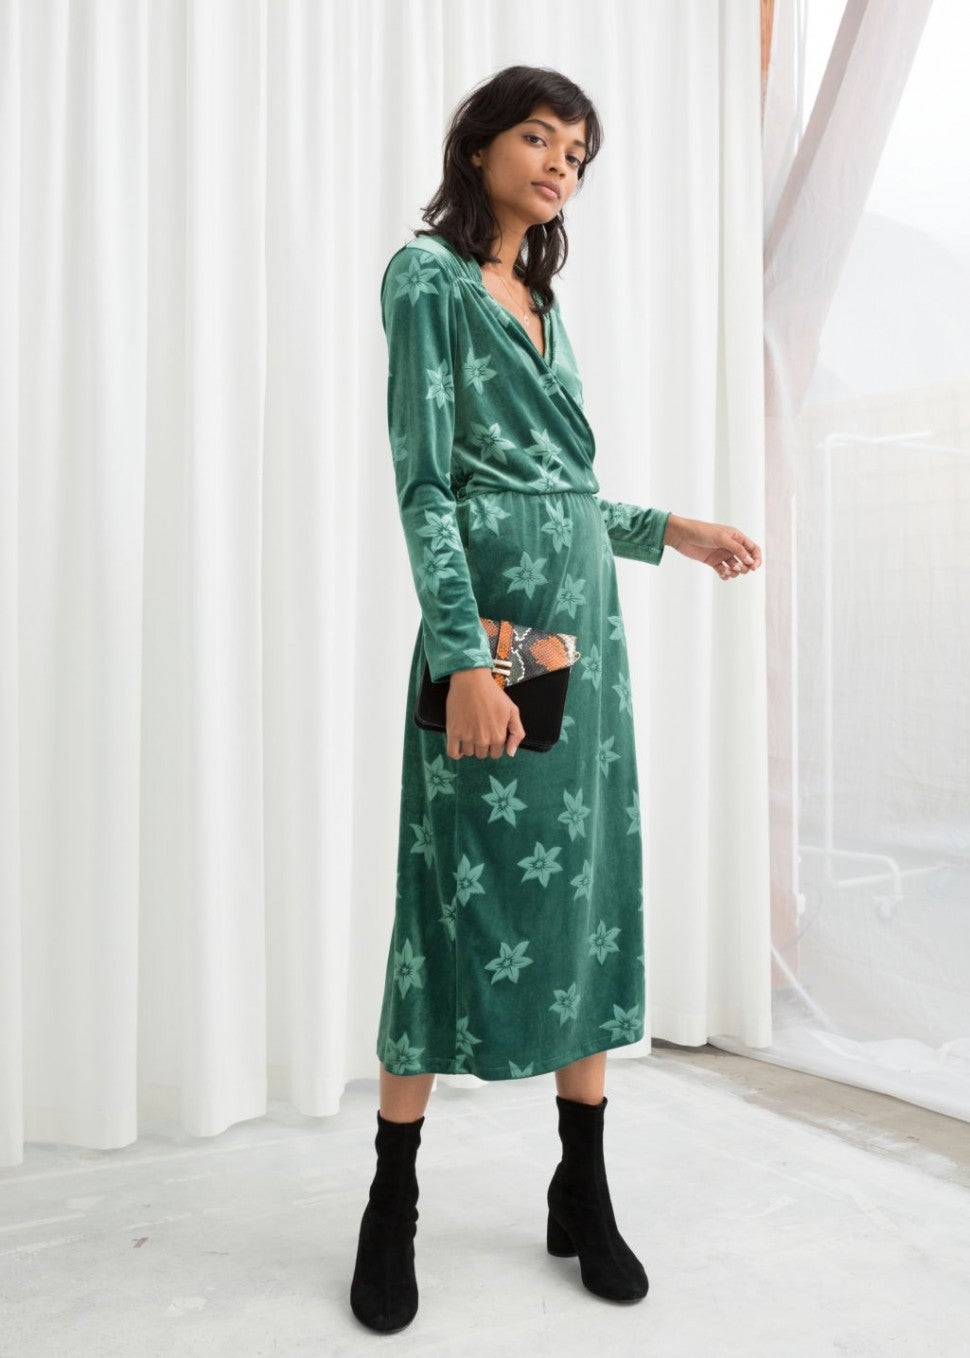 & Other Stories green velour dress